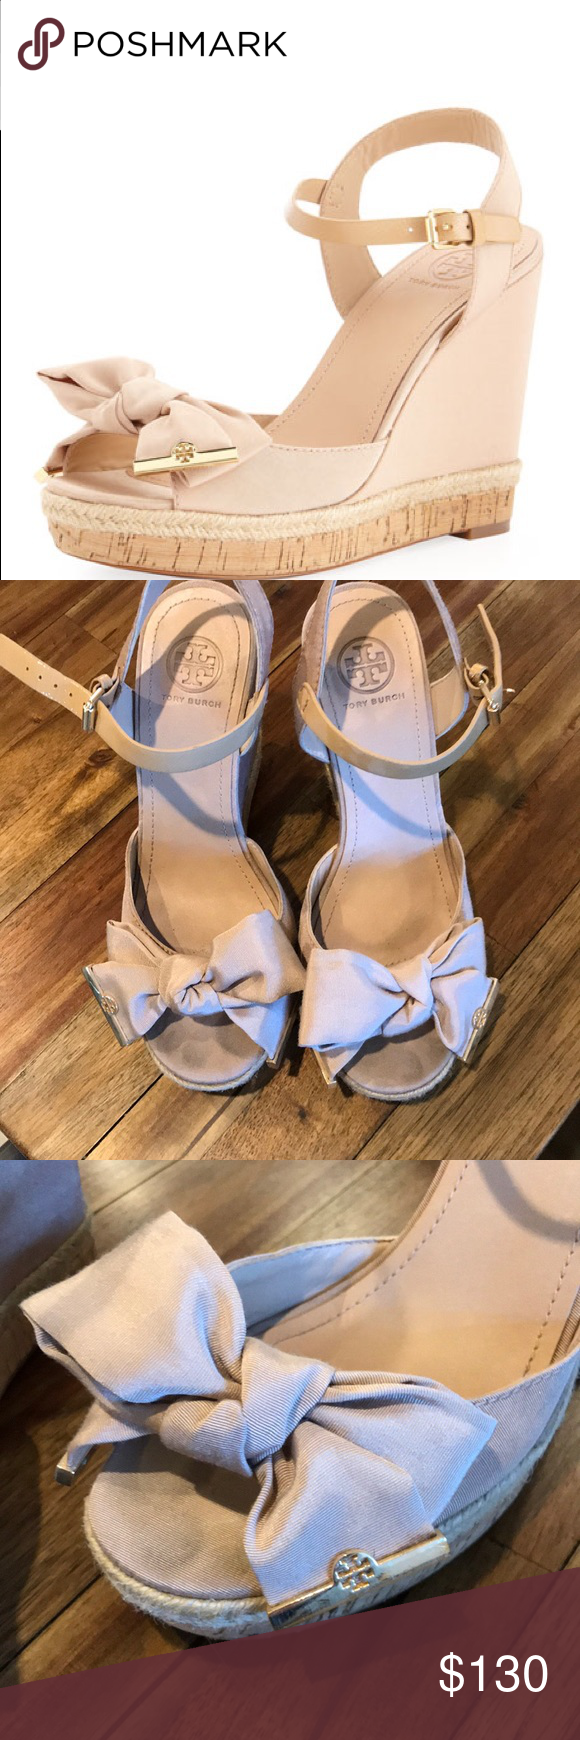 4e00ce8b425 Tory Burch Penny Faille Bow Wedge Tory Burch wedge. Perfect Nude color. Bows  with T emblem on sides. Ankle strap. Some wear on bottoms.